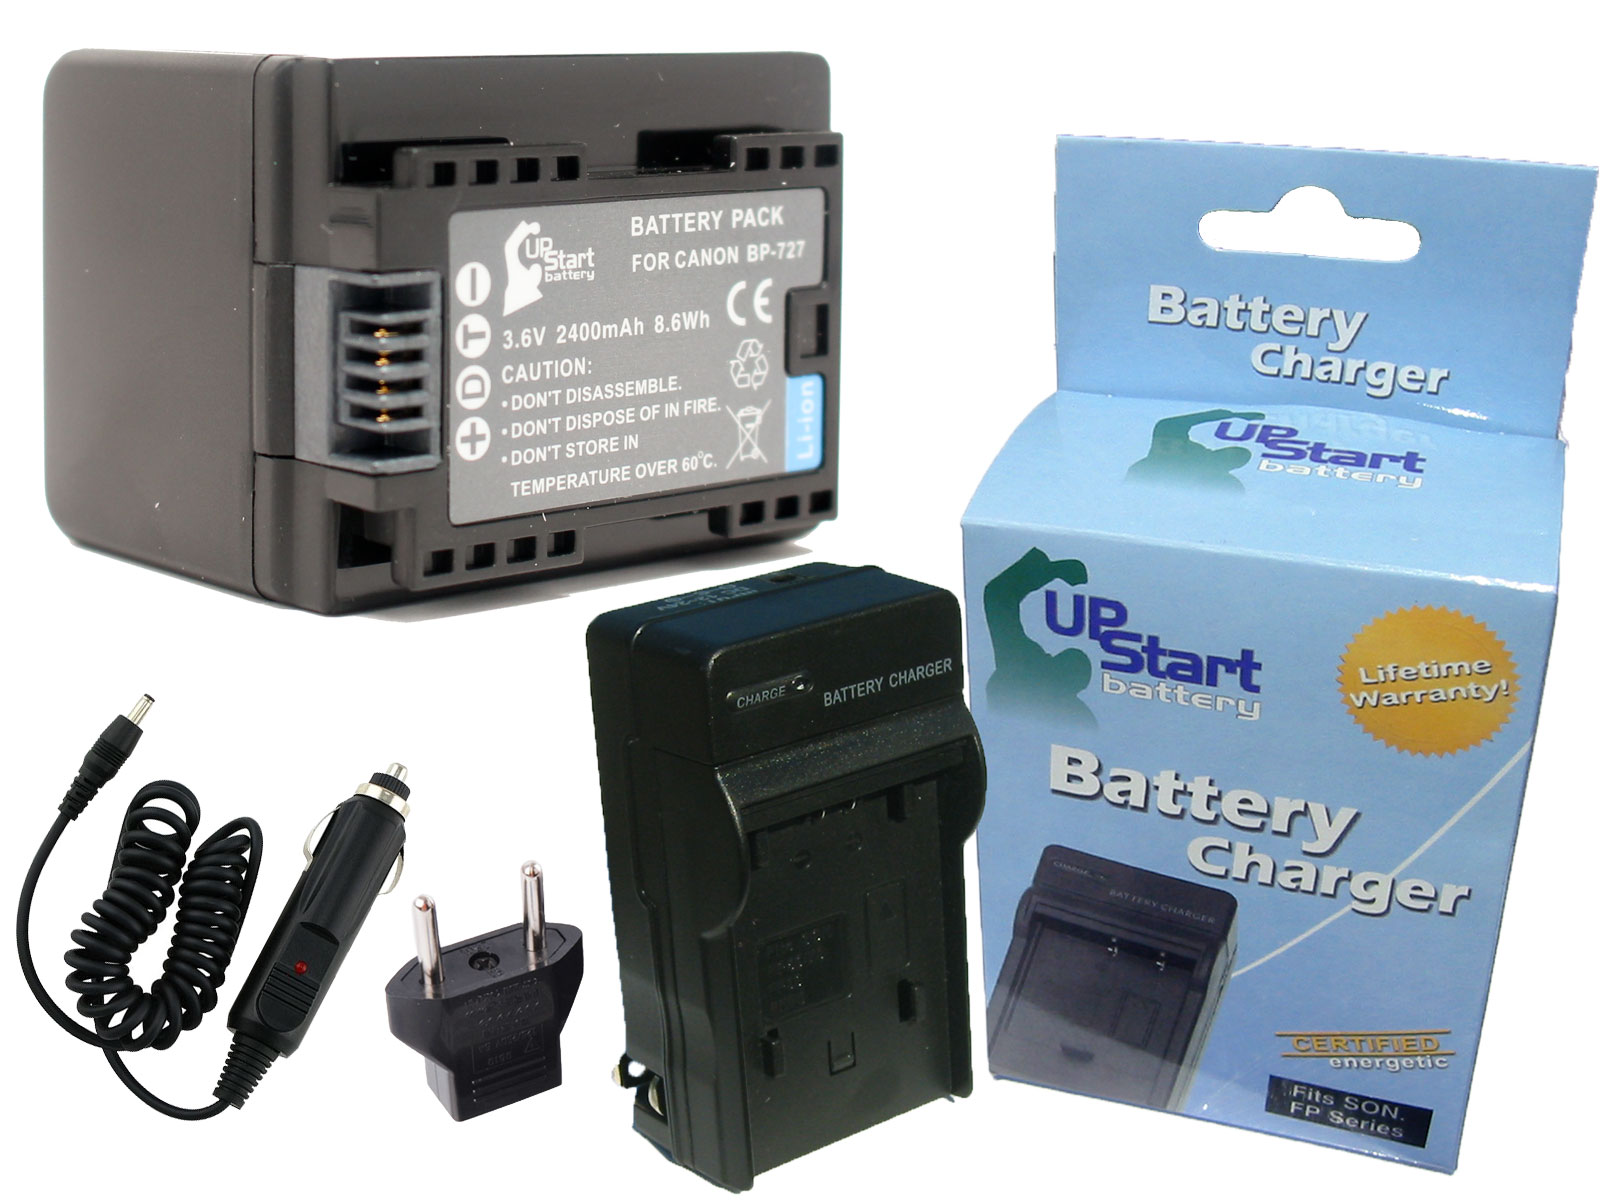 UpStart Battery Canon iVIS HF R42 Battery and Charger with Car Plug and EU Adapter - Replacement for Canon BP-727 Camera Batteries and Chargers at Sears.com